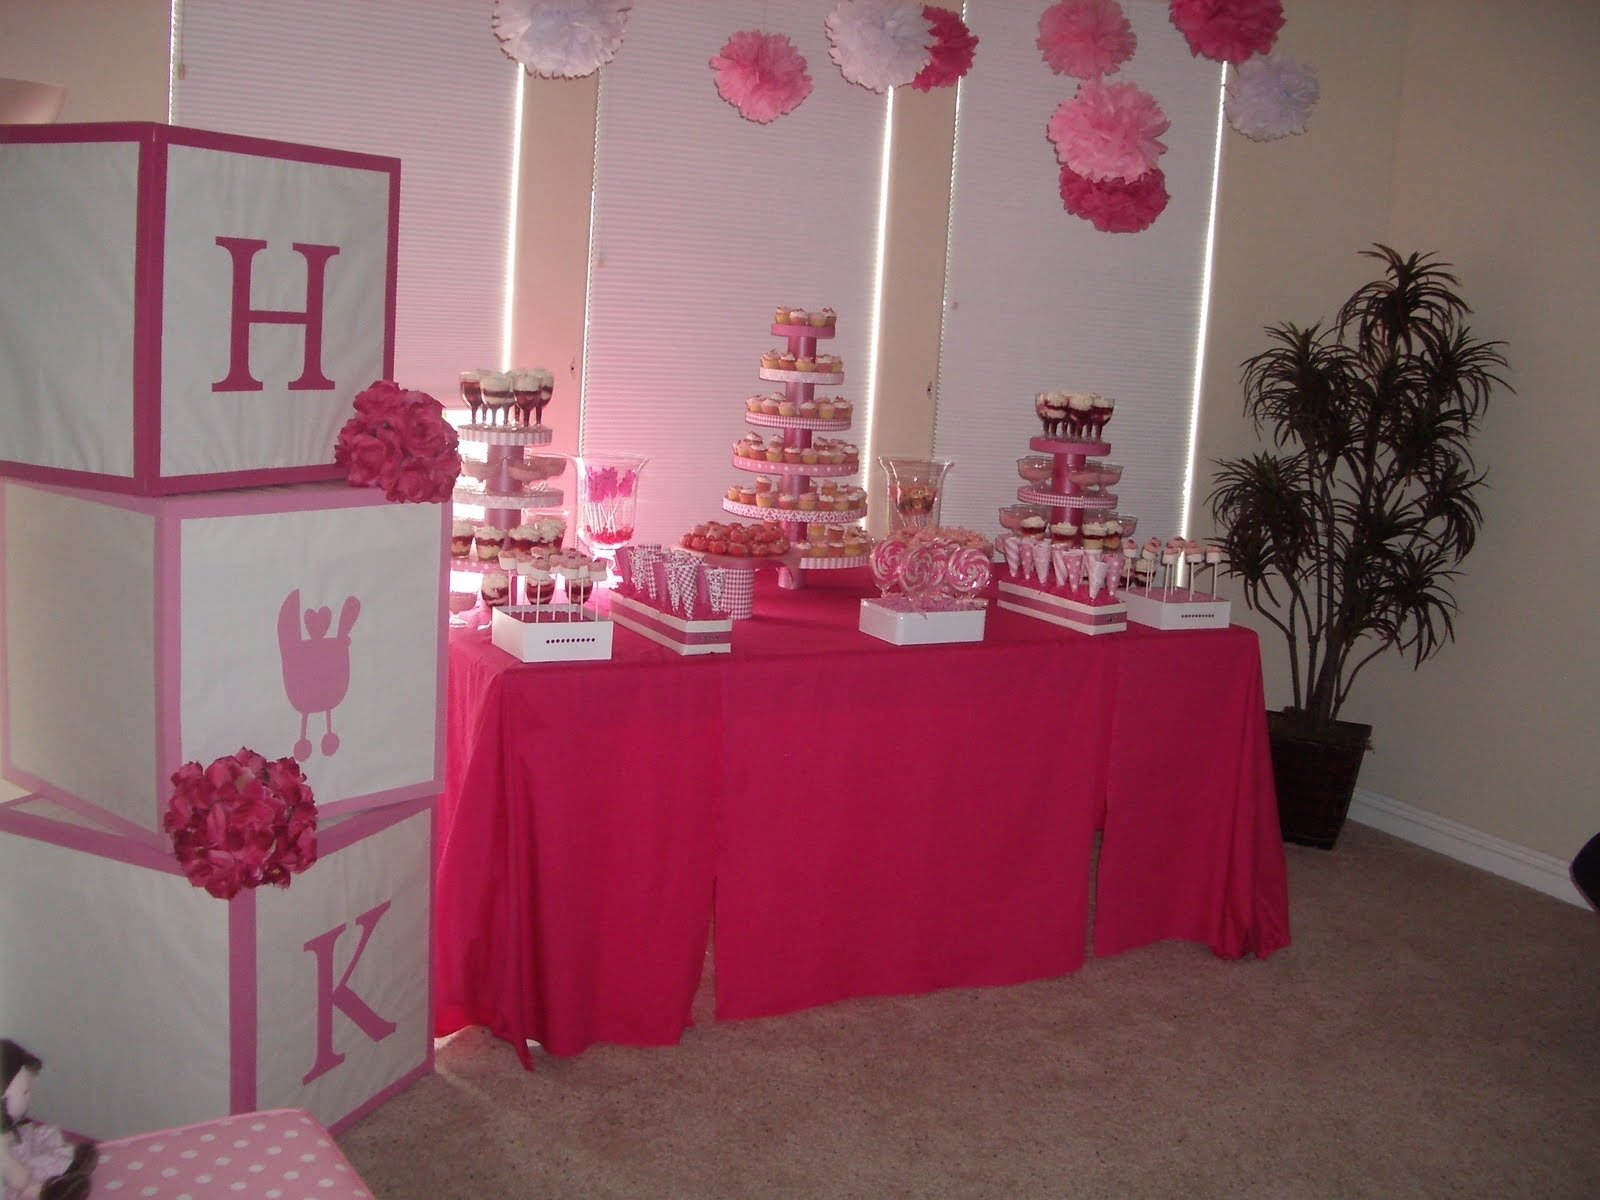 10 Stunning Baby Shower For A Girl Ideas cute ideas for a baby shower for a girl omega center ideas 2020